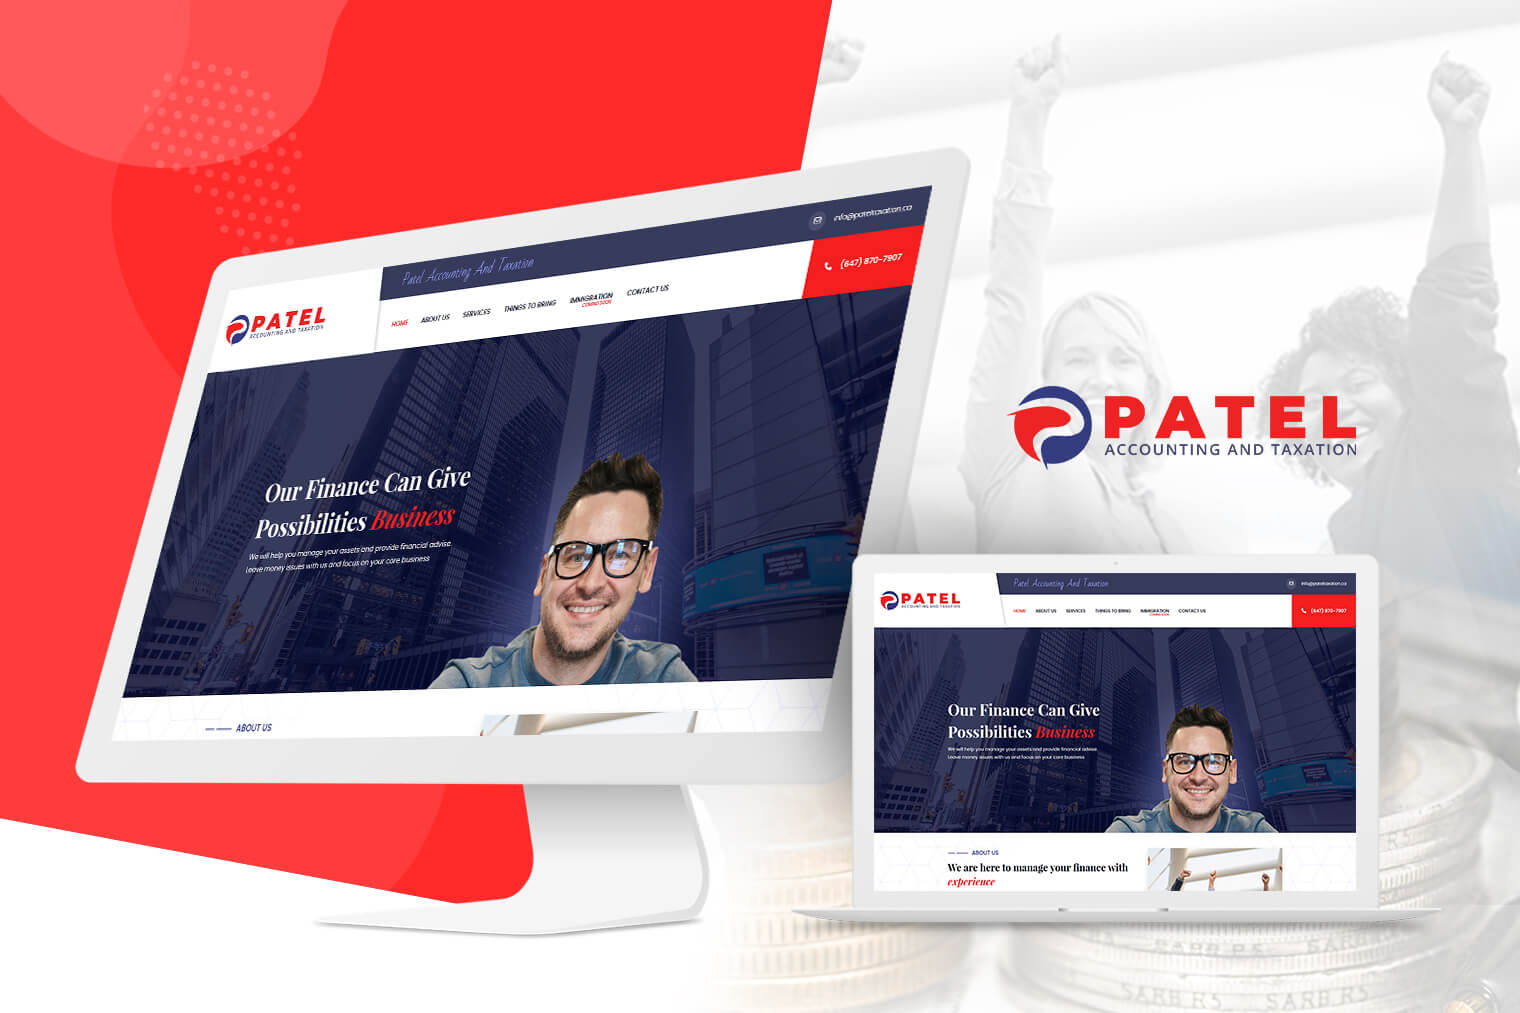 Patel Accounting And Taxation